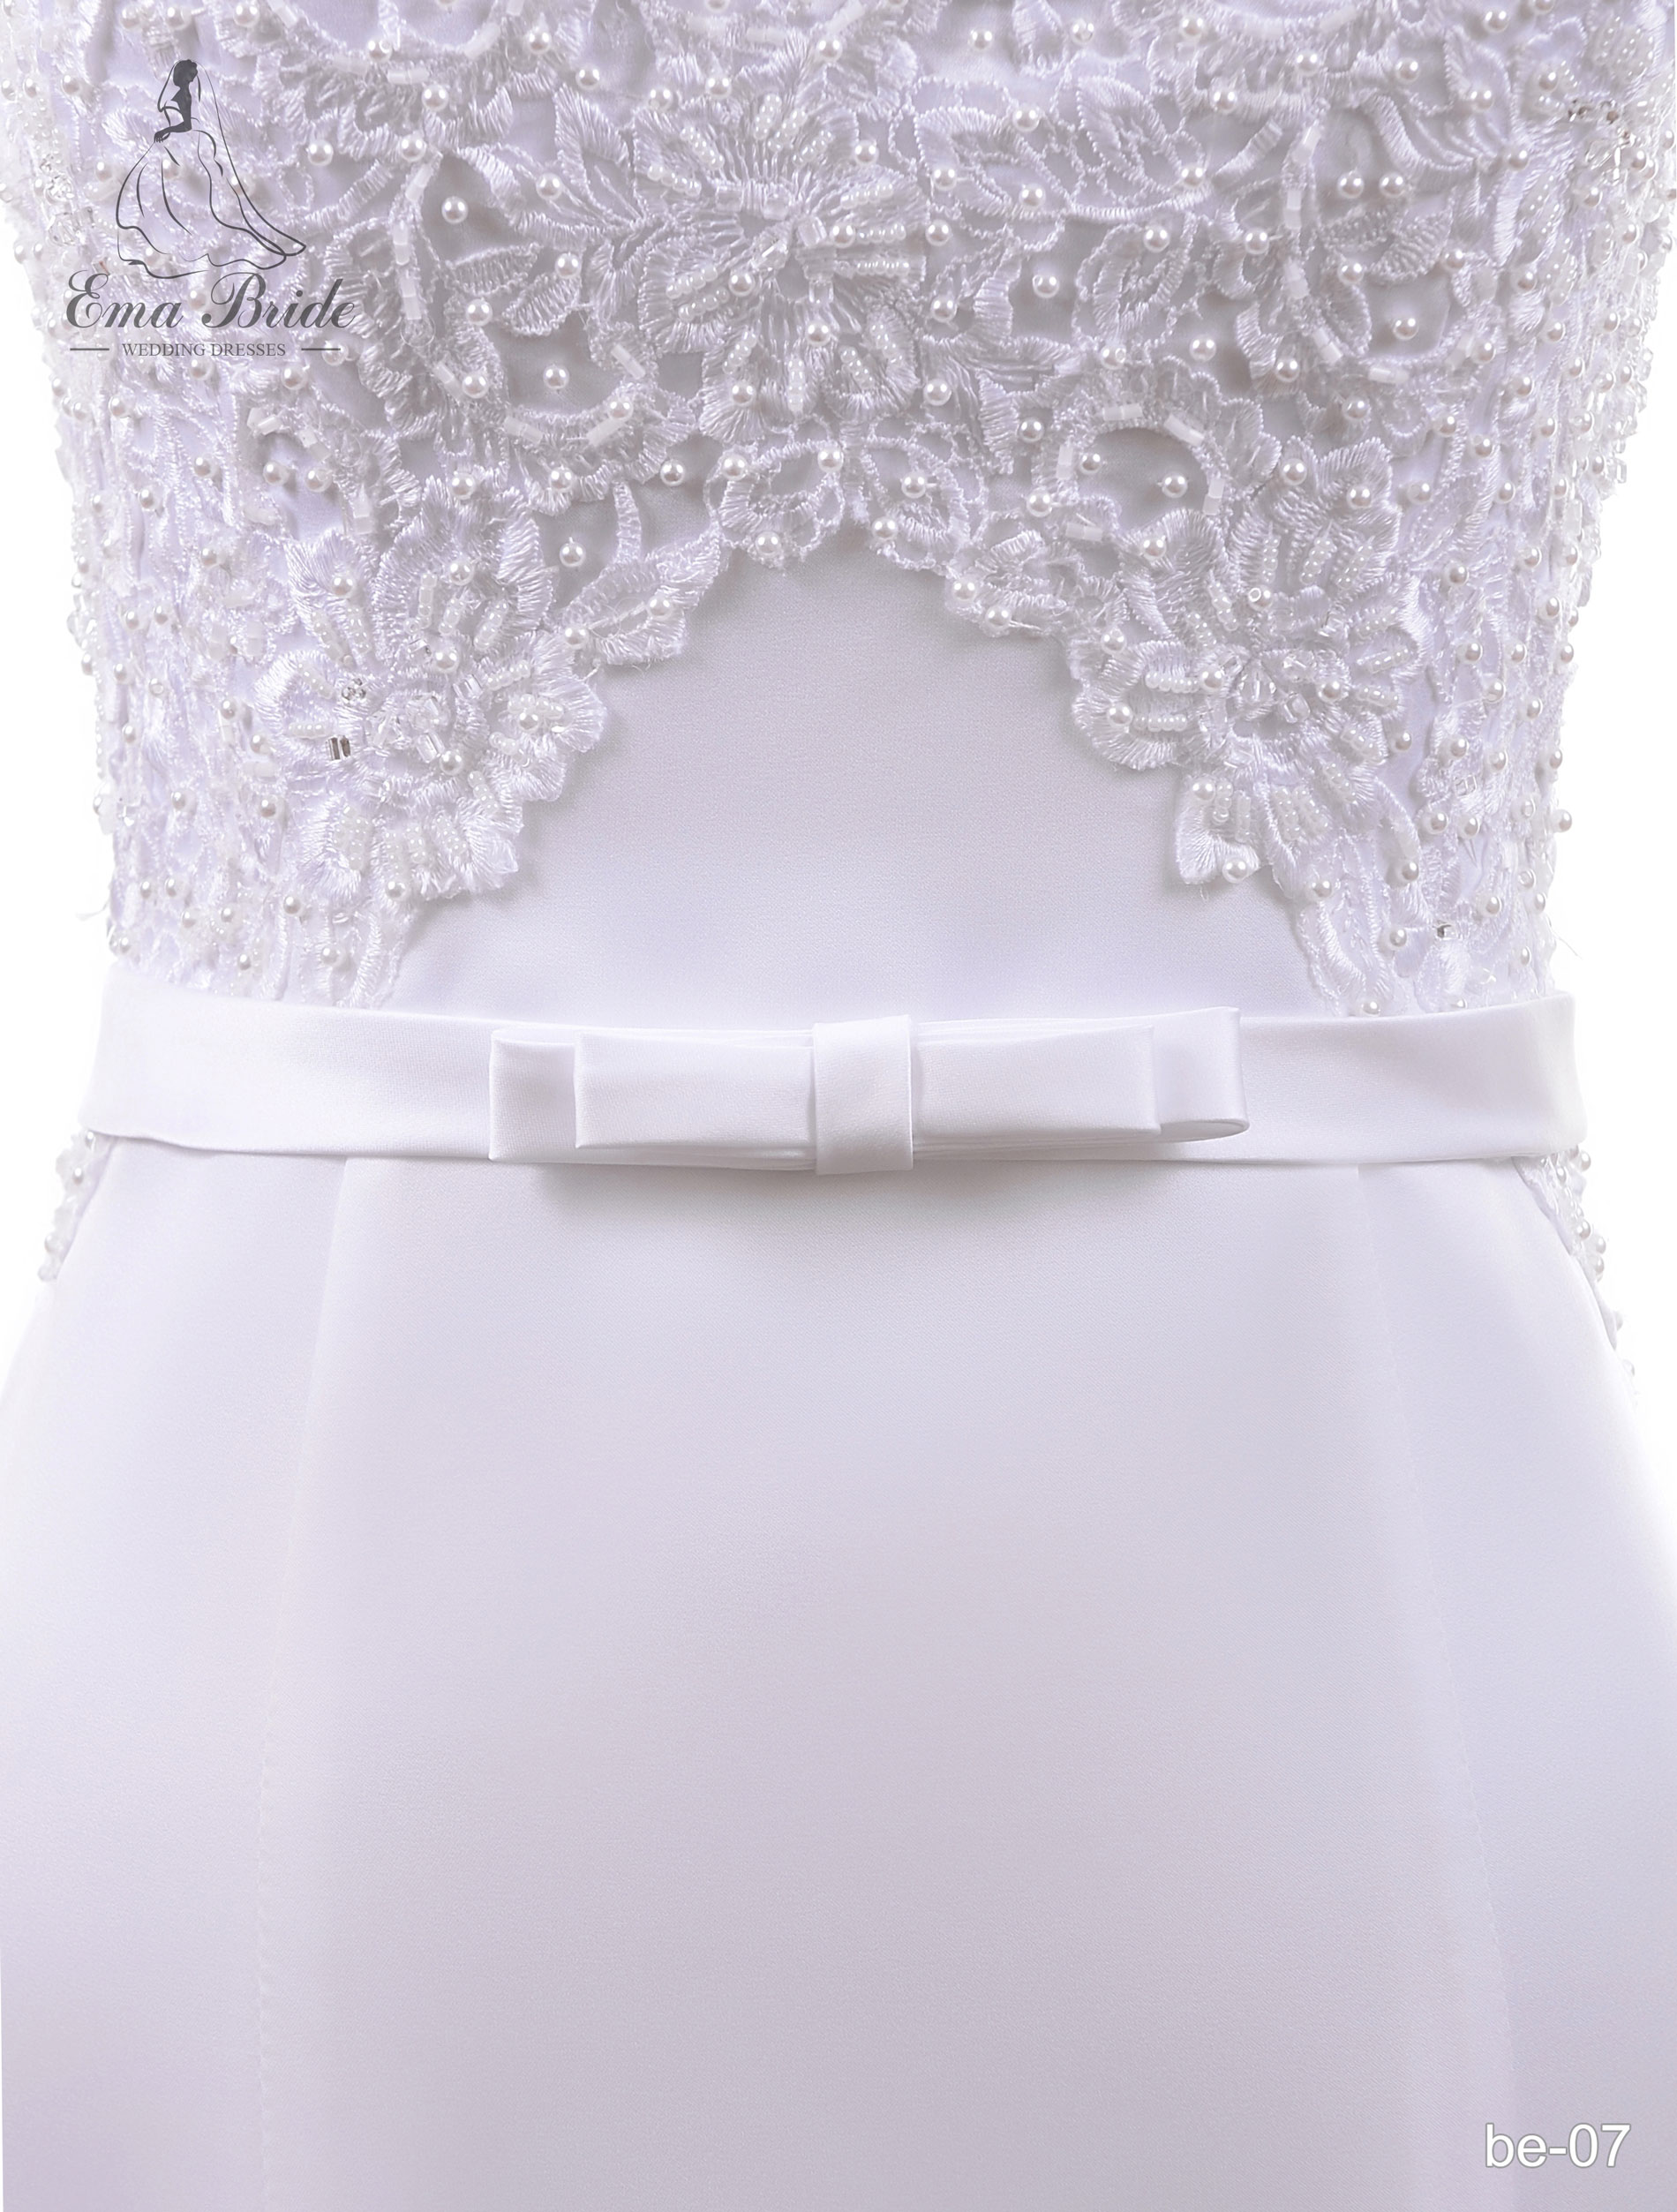 A belt for a wedding dress Be-07